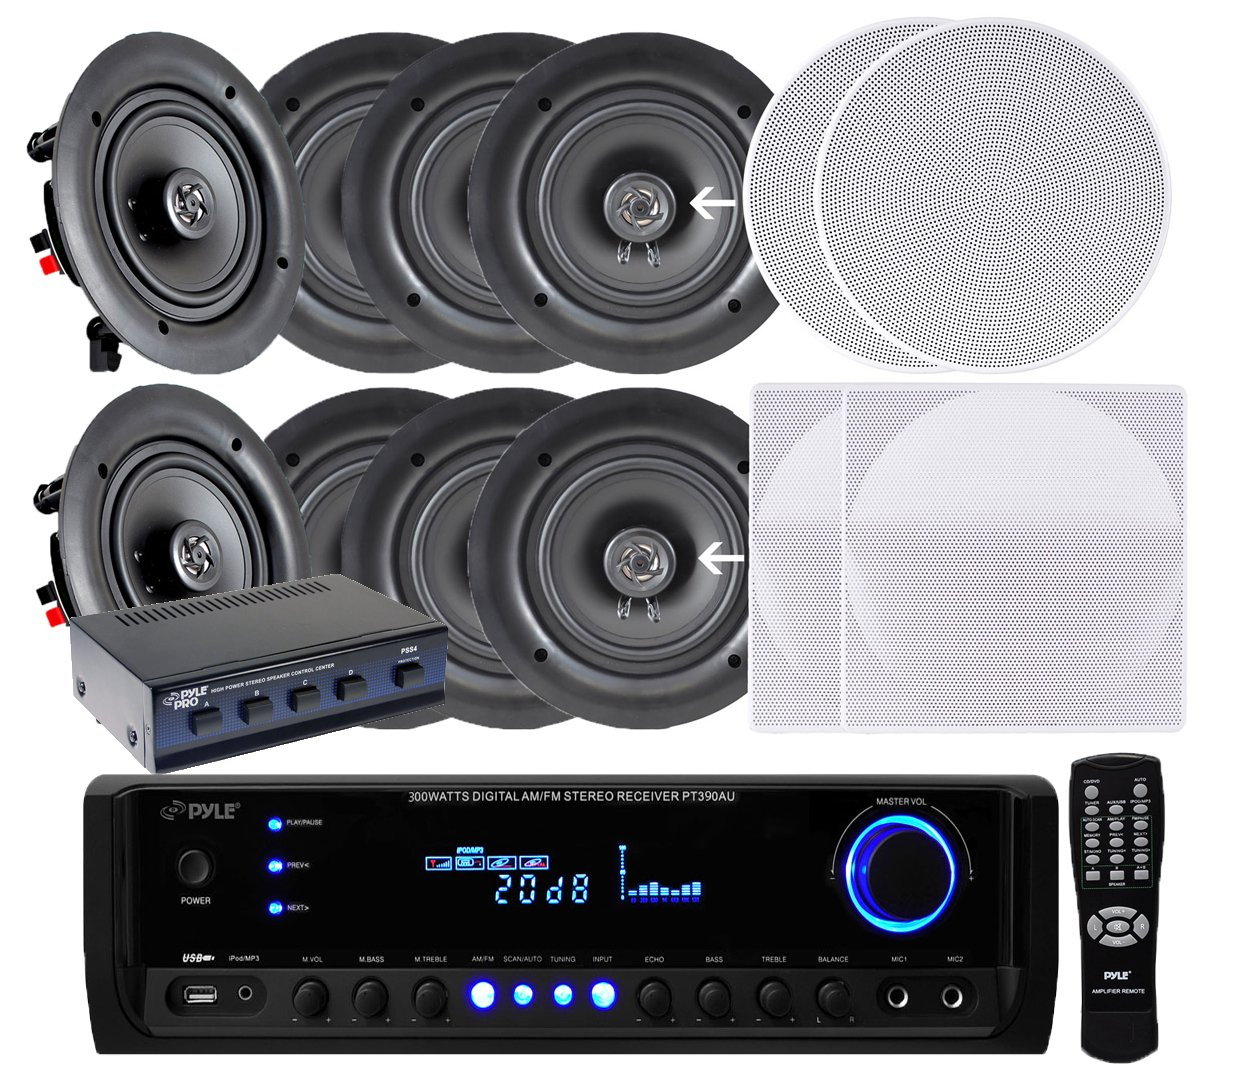 Pyle Kthsp690s 4 Pairs Of 200w 65 In Wall Ceiling Wiring Outdoor Speakers To Stereo Receiver White W 300w Digital Home Usb Sd Aux Input